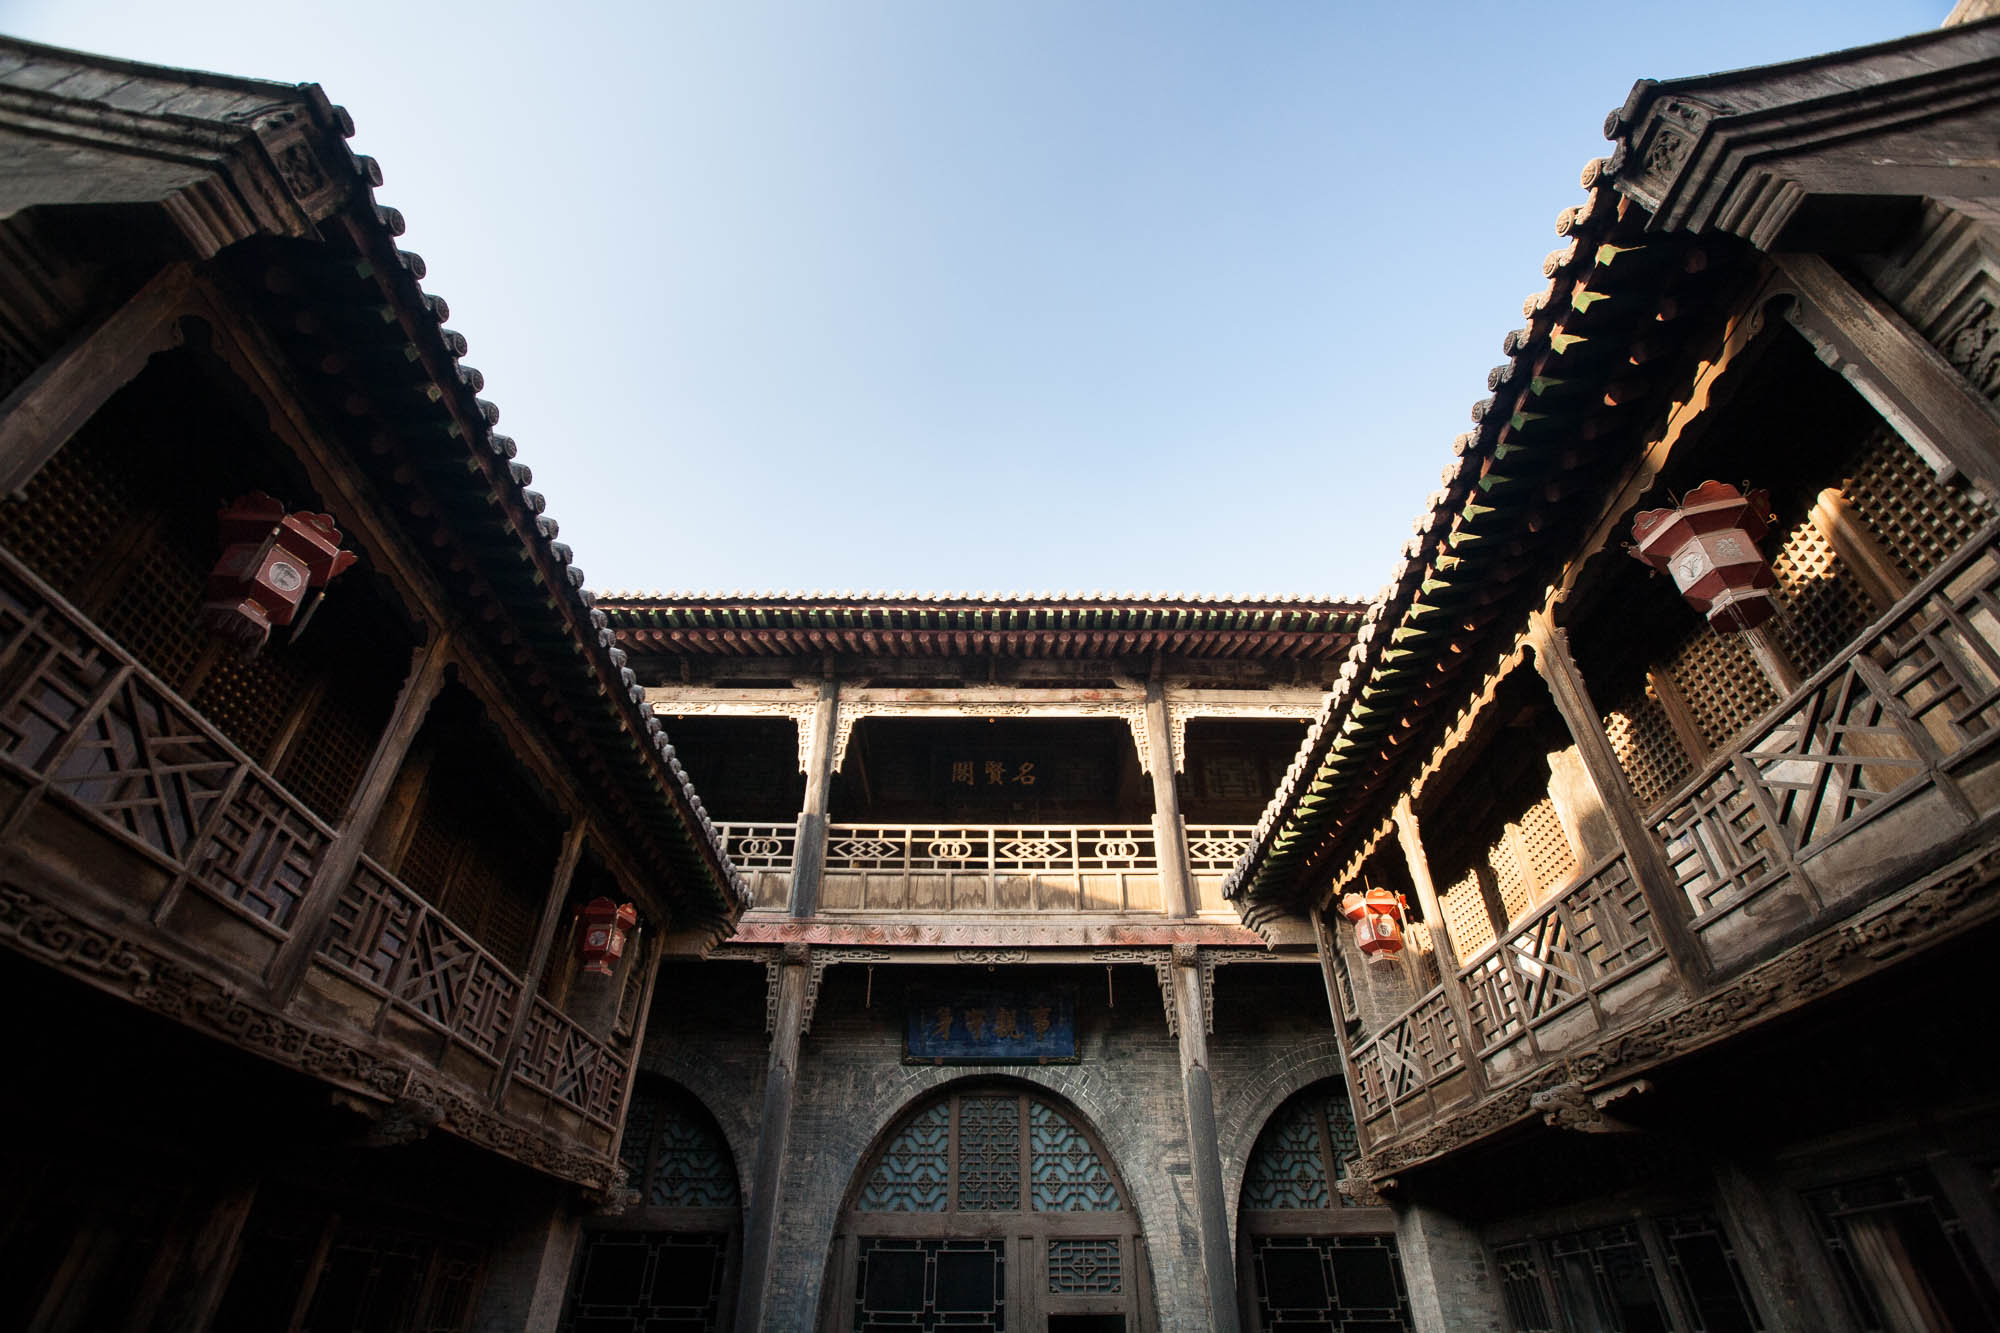 within the Wang Family Courtyard